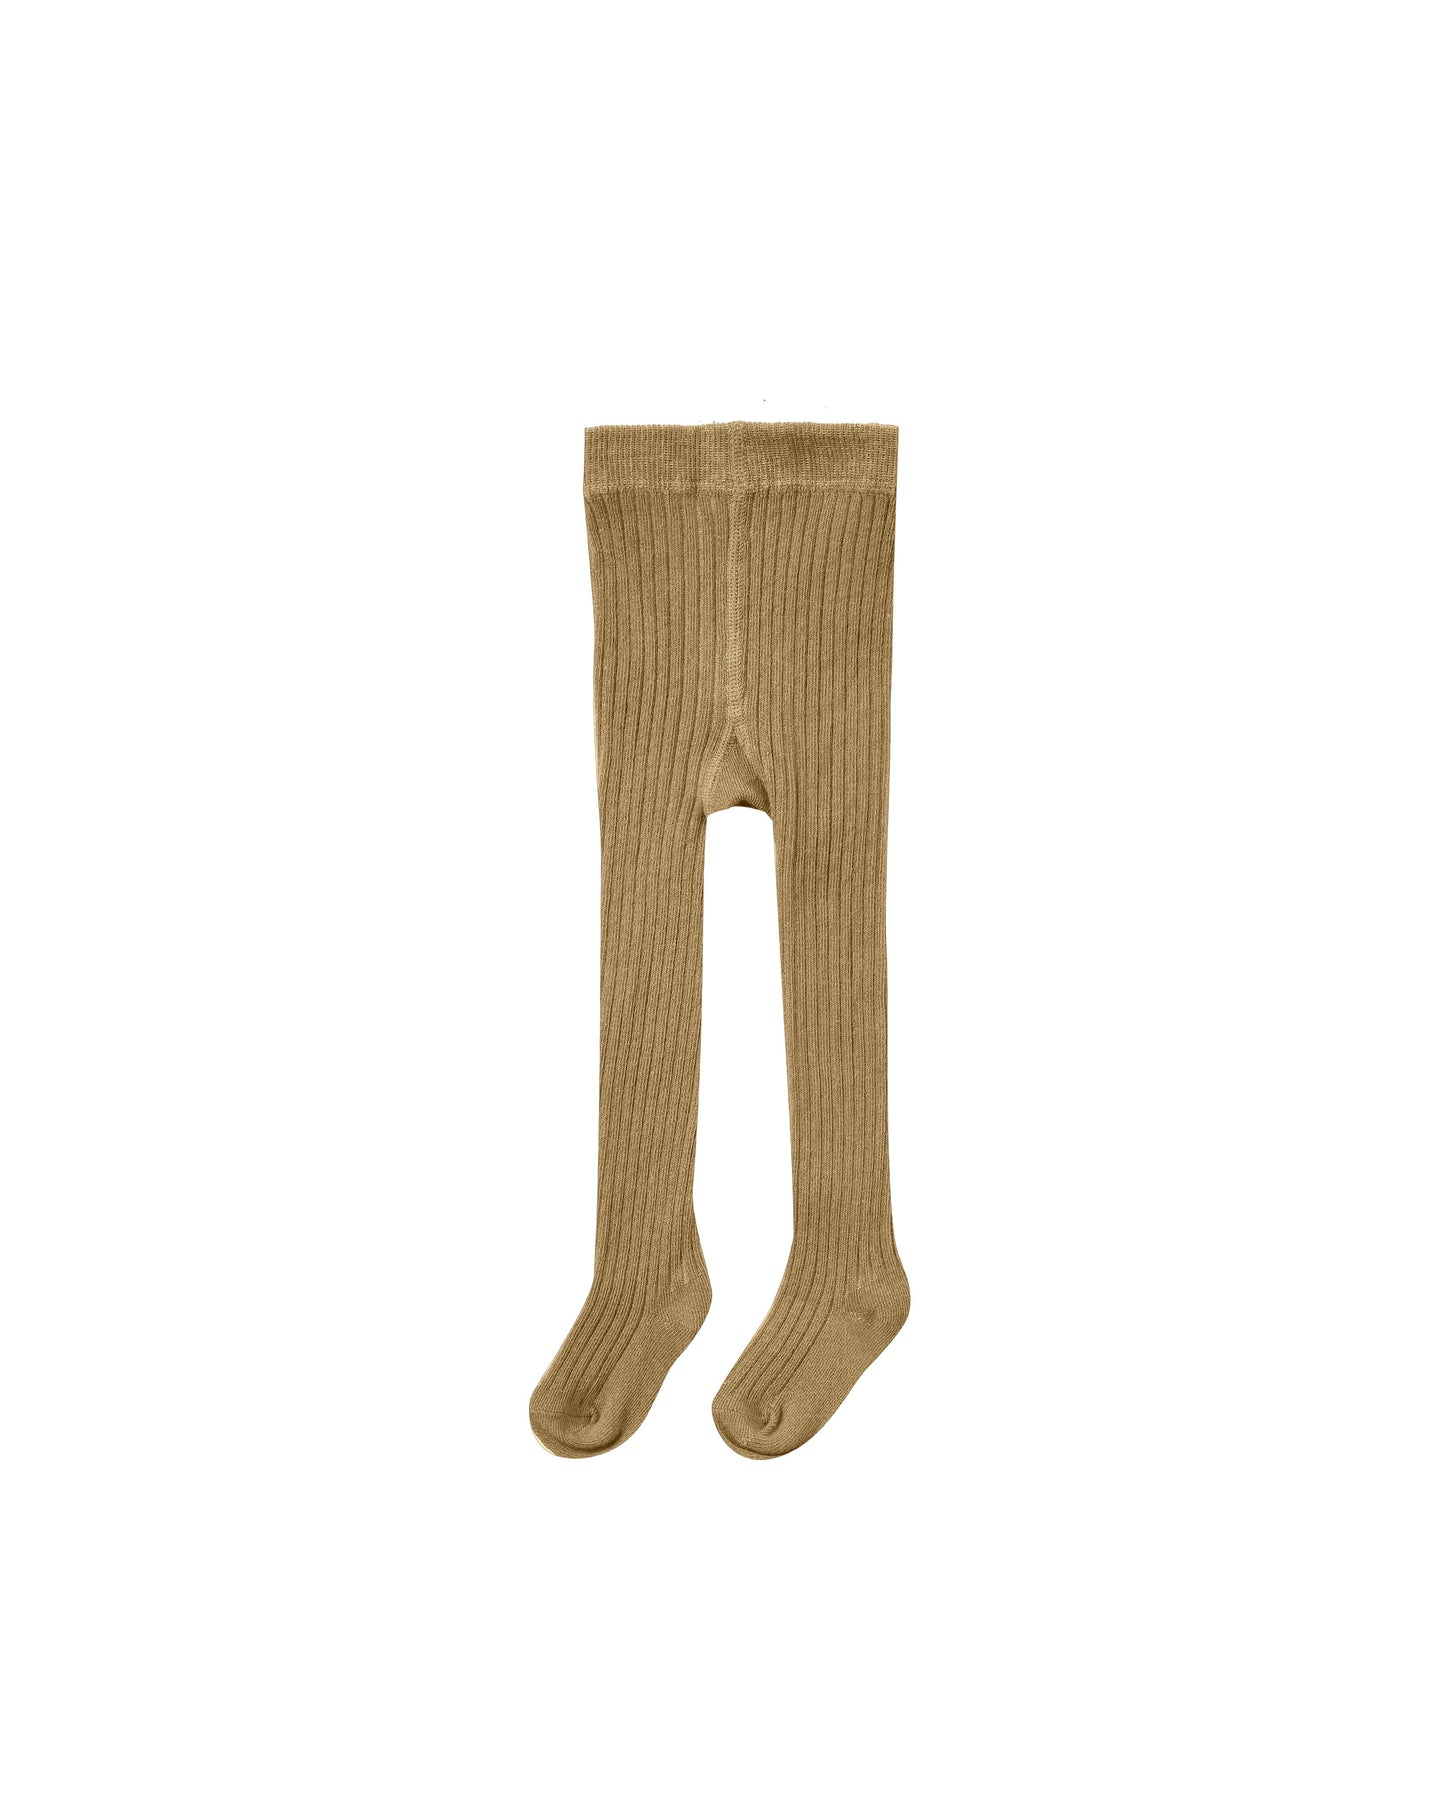 Rylee + Cru - Rib Knit Tights - Goldenrod